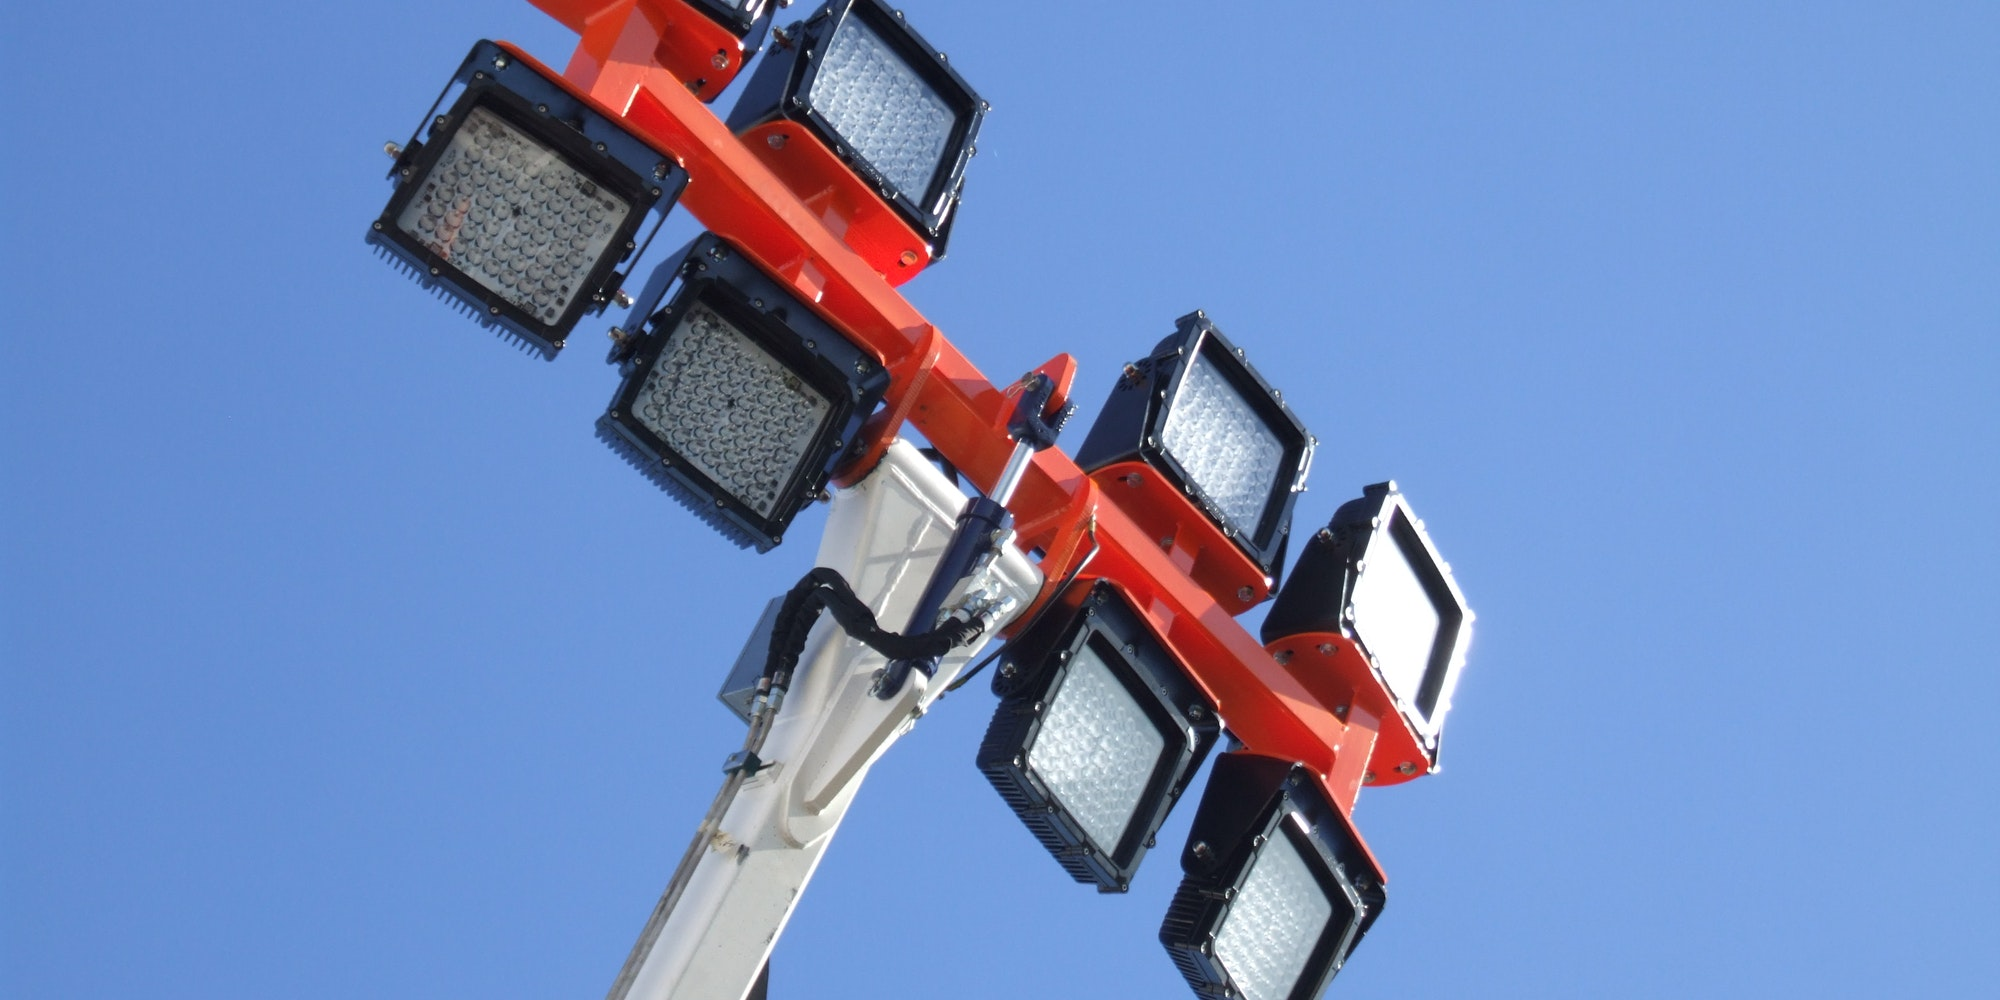 CP66 LED Flood Light in application, installed on a high mast pole on an industrial /  mine site, close up shot